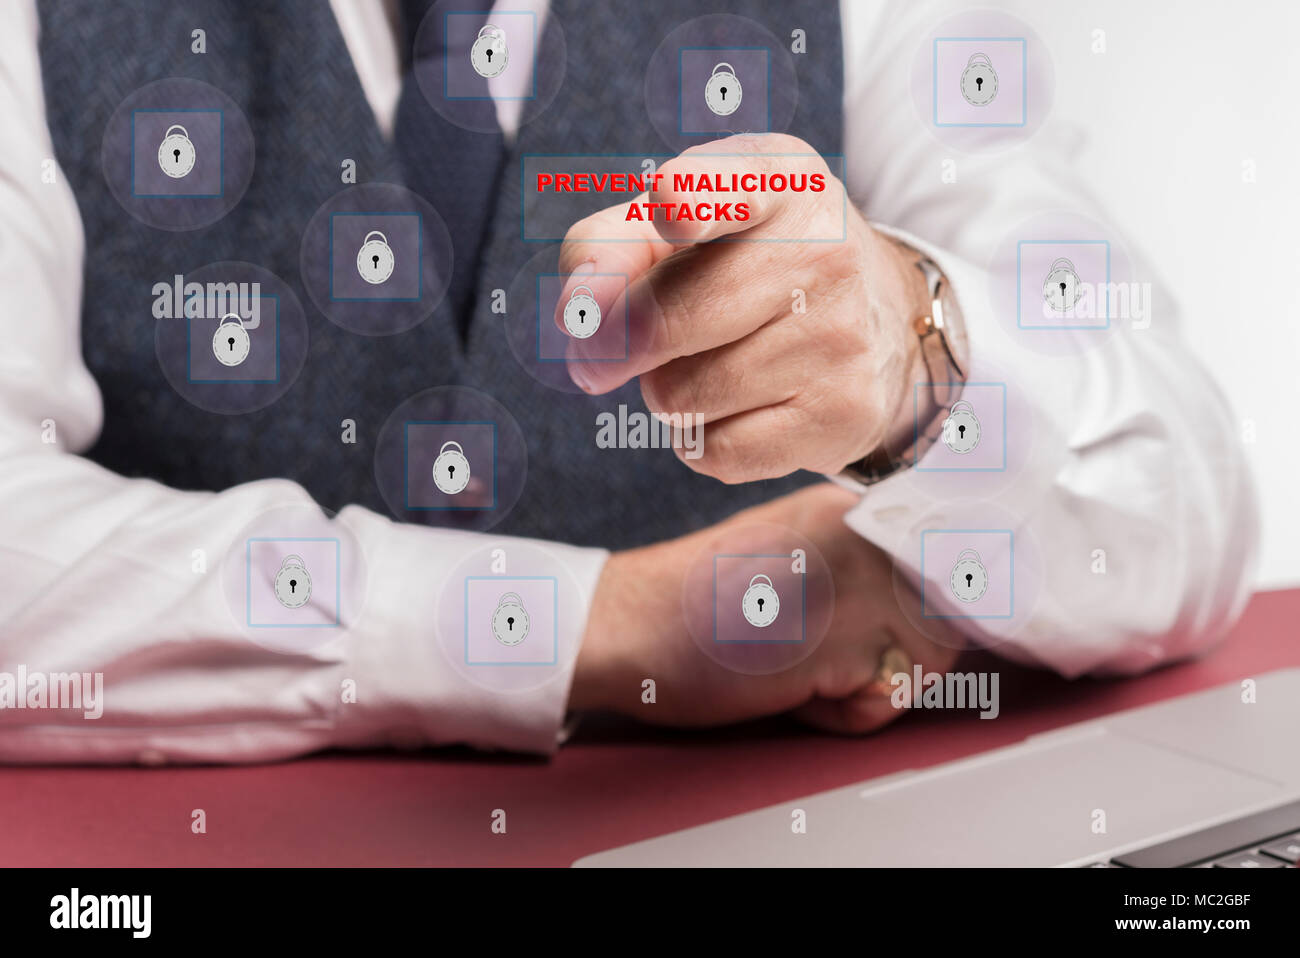 man sitting at touching prevent malicious attacks on a virtual screen. - Stock Image